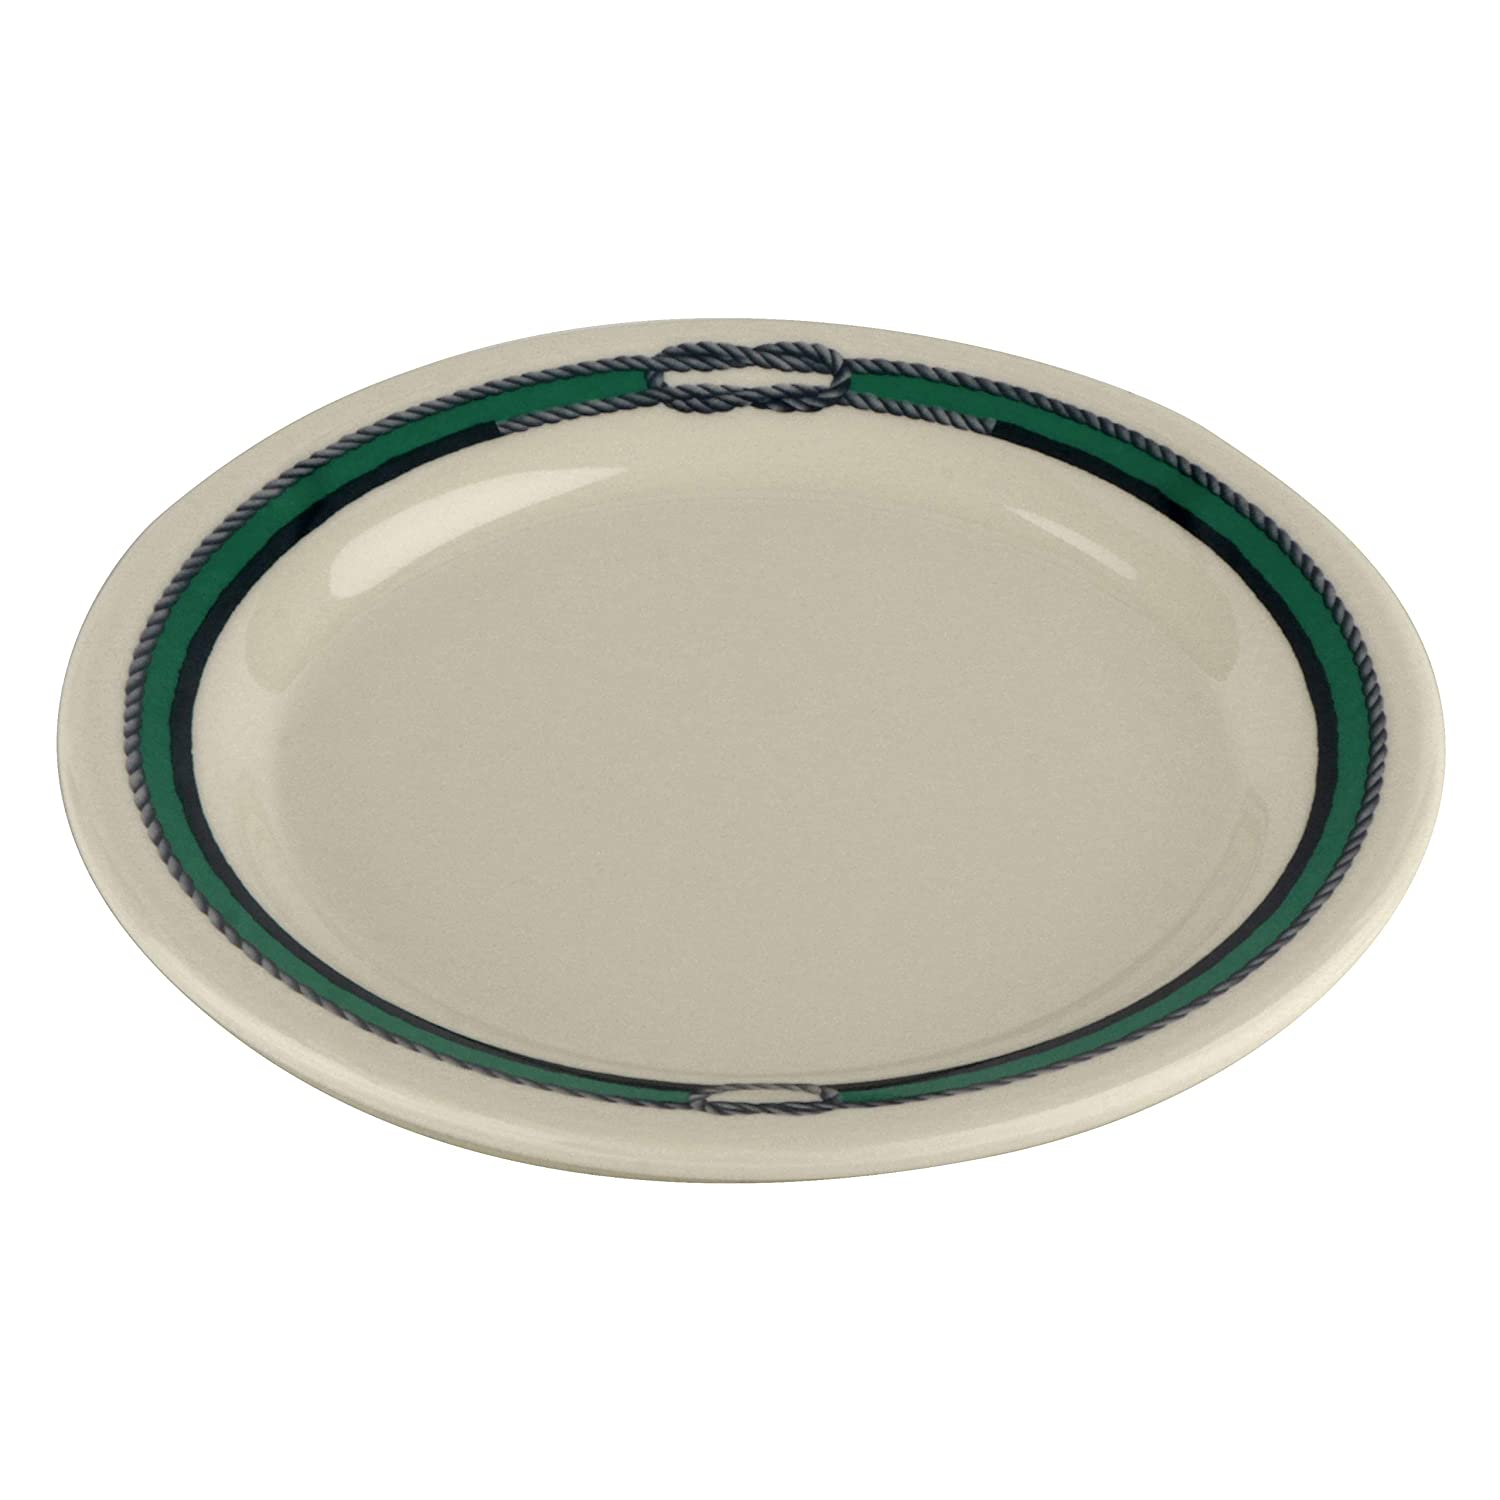 Commercial-Grade Bread and Popular standard Butter Daily bargain sale Plate Ironstone 6.25